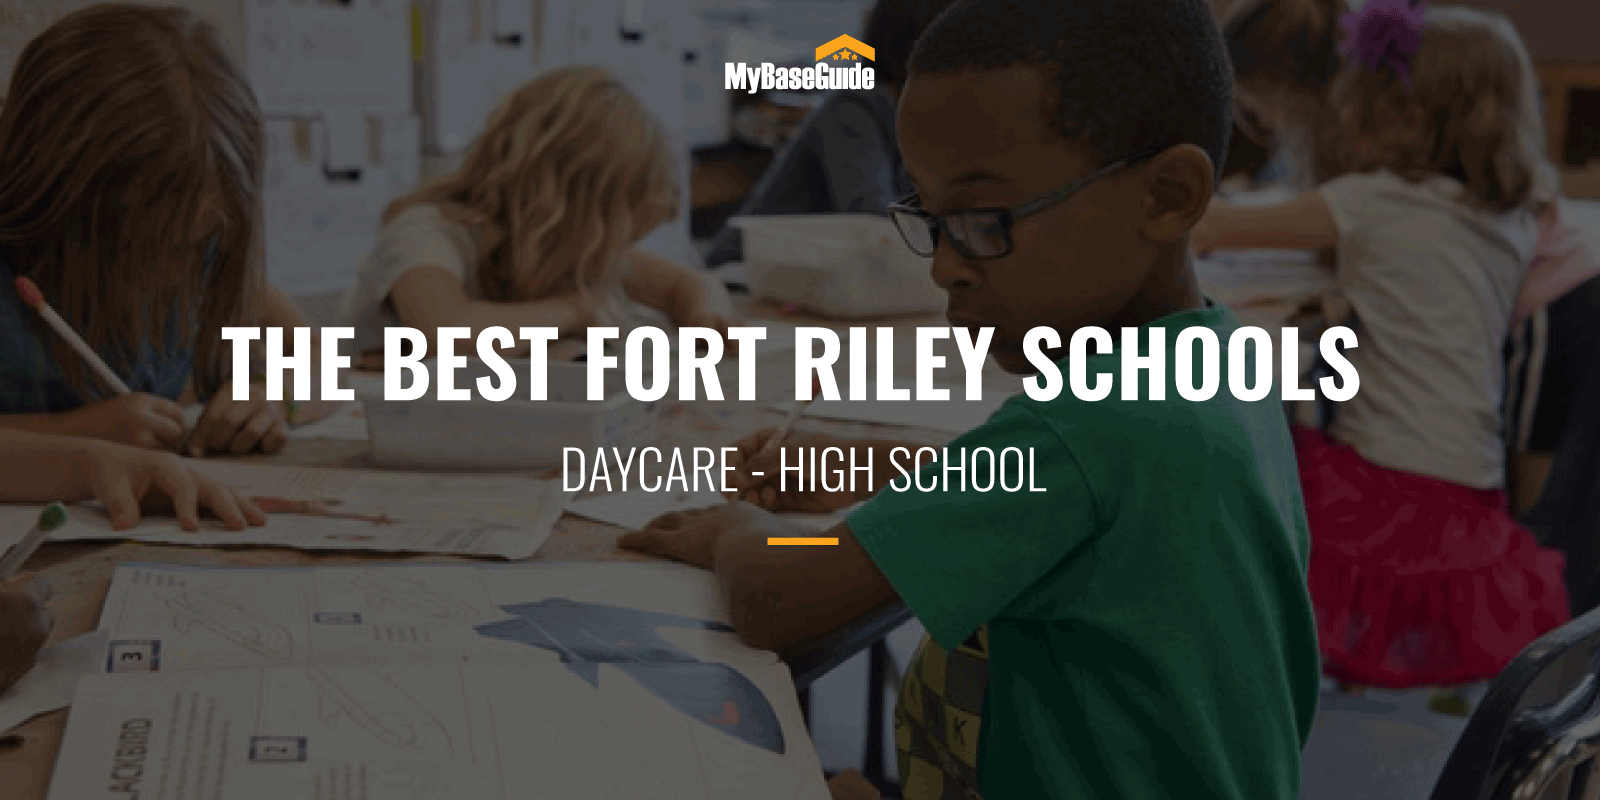 The Best Fort Riley Schools: Daycare - High School